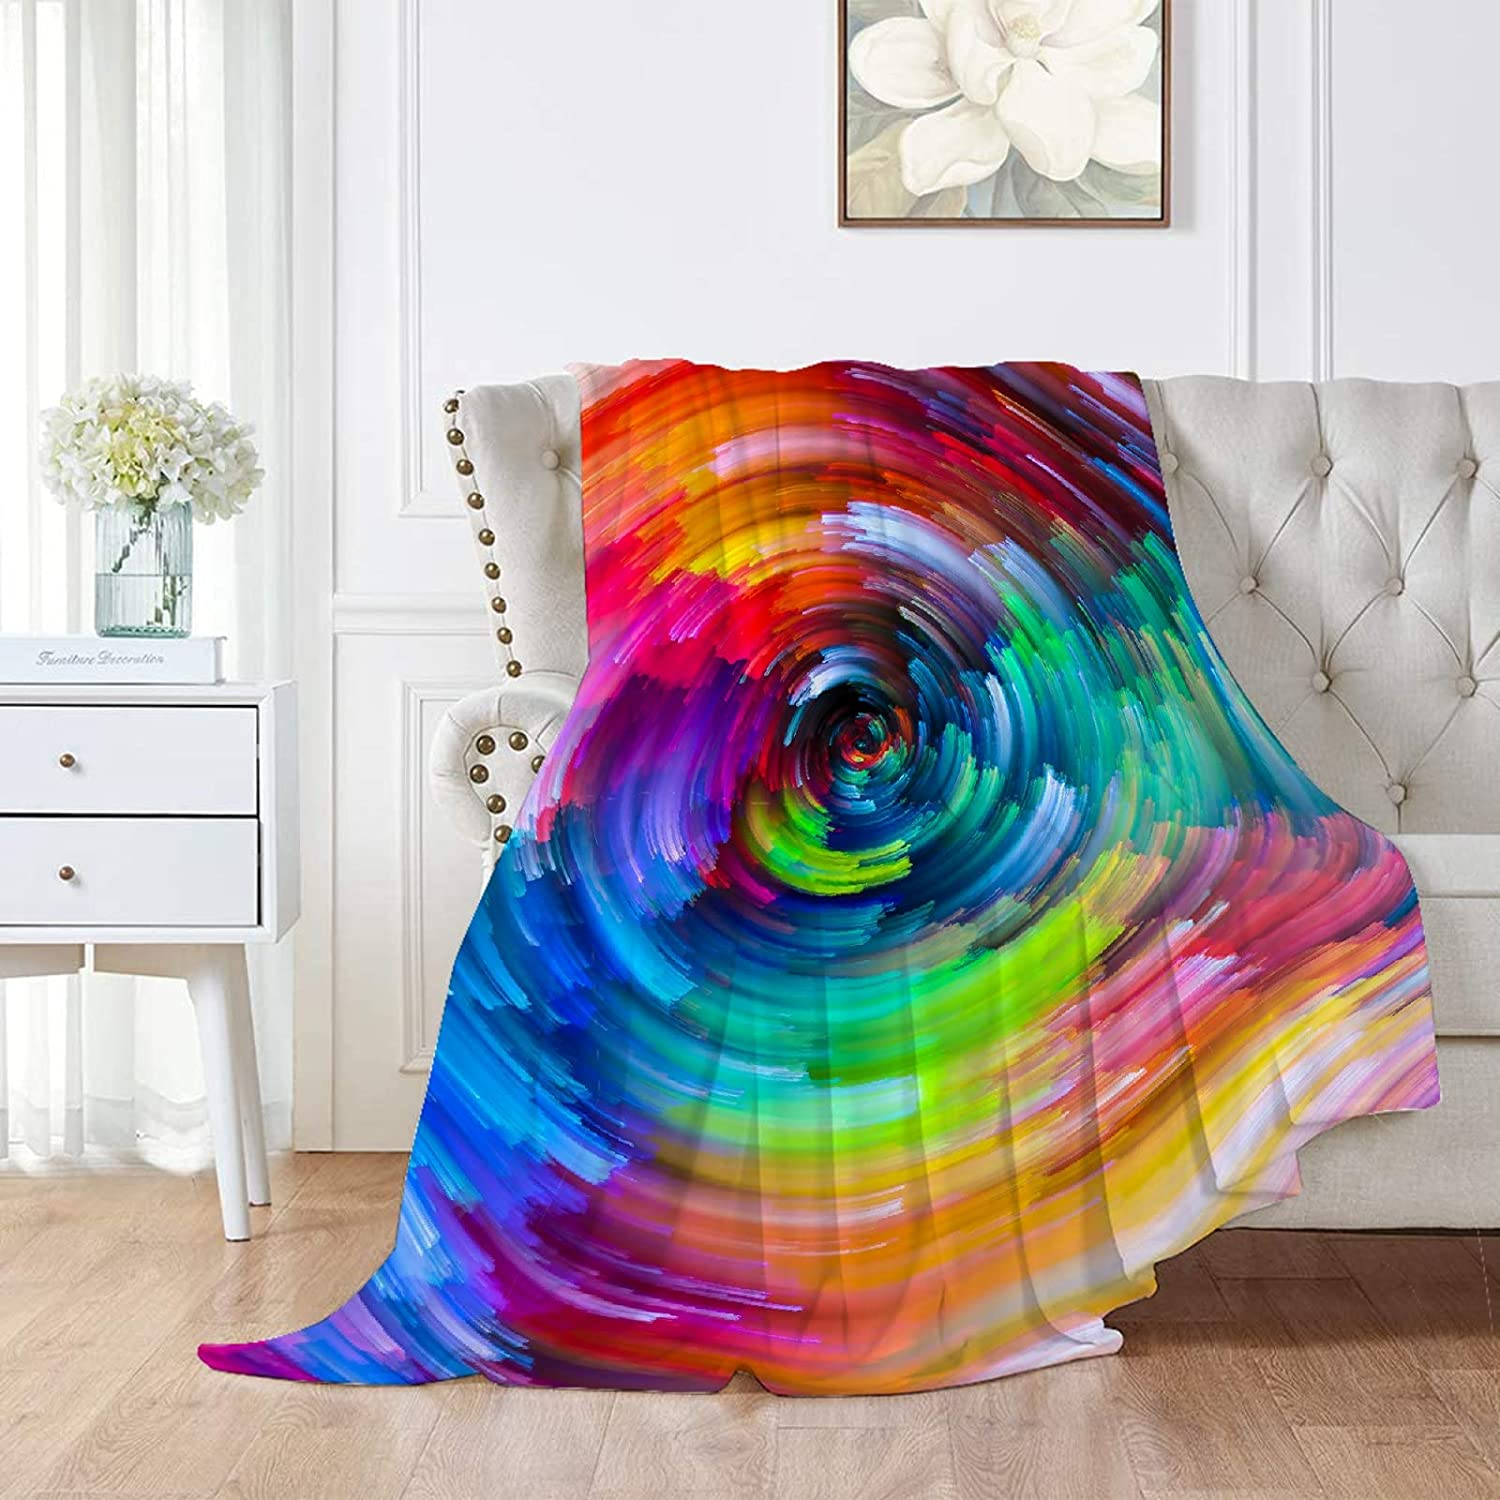 Rainbow Flannel Blanket Throw New Free Shipping Fuzzy King Size Gifts for Super Soft Bed